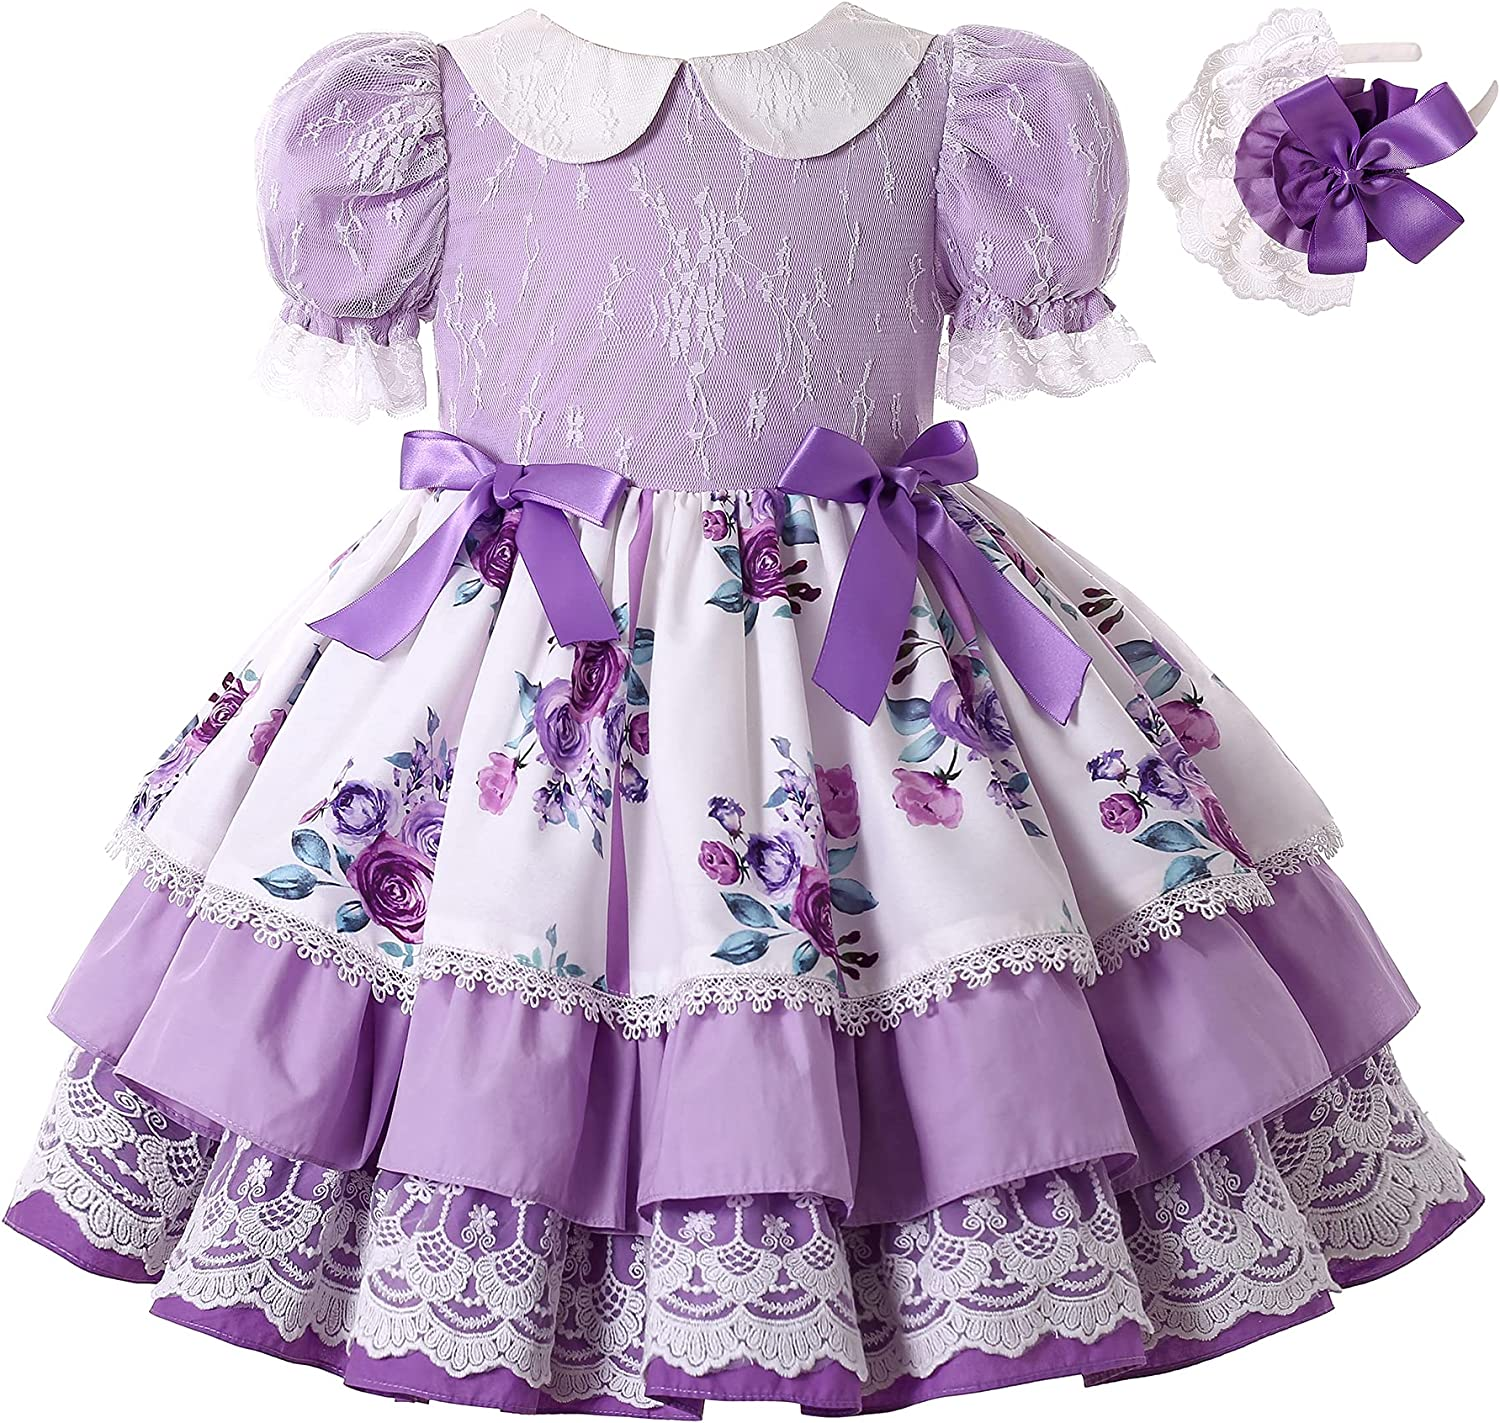 Pettigirl Girls Elegant Purple Floral Ruffle Lace Clothes Kids Toddler Lovely Pageant Party Wedding Boutique Dresses